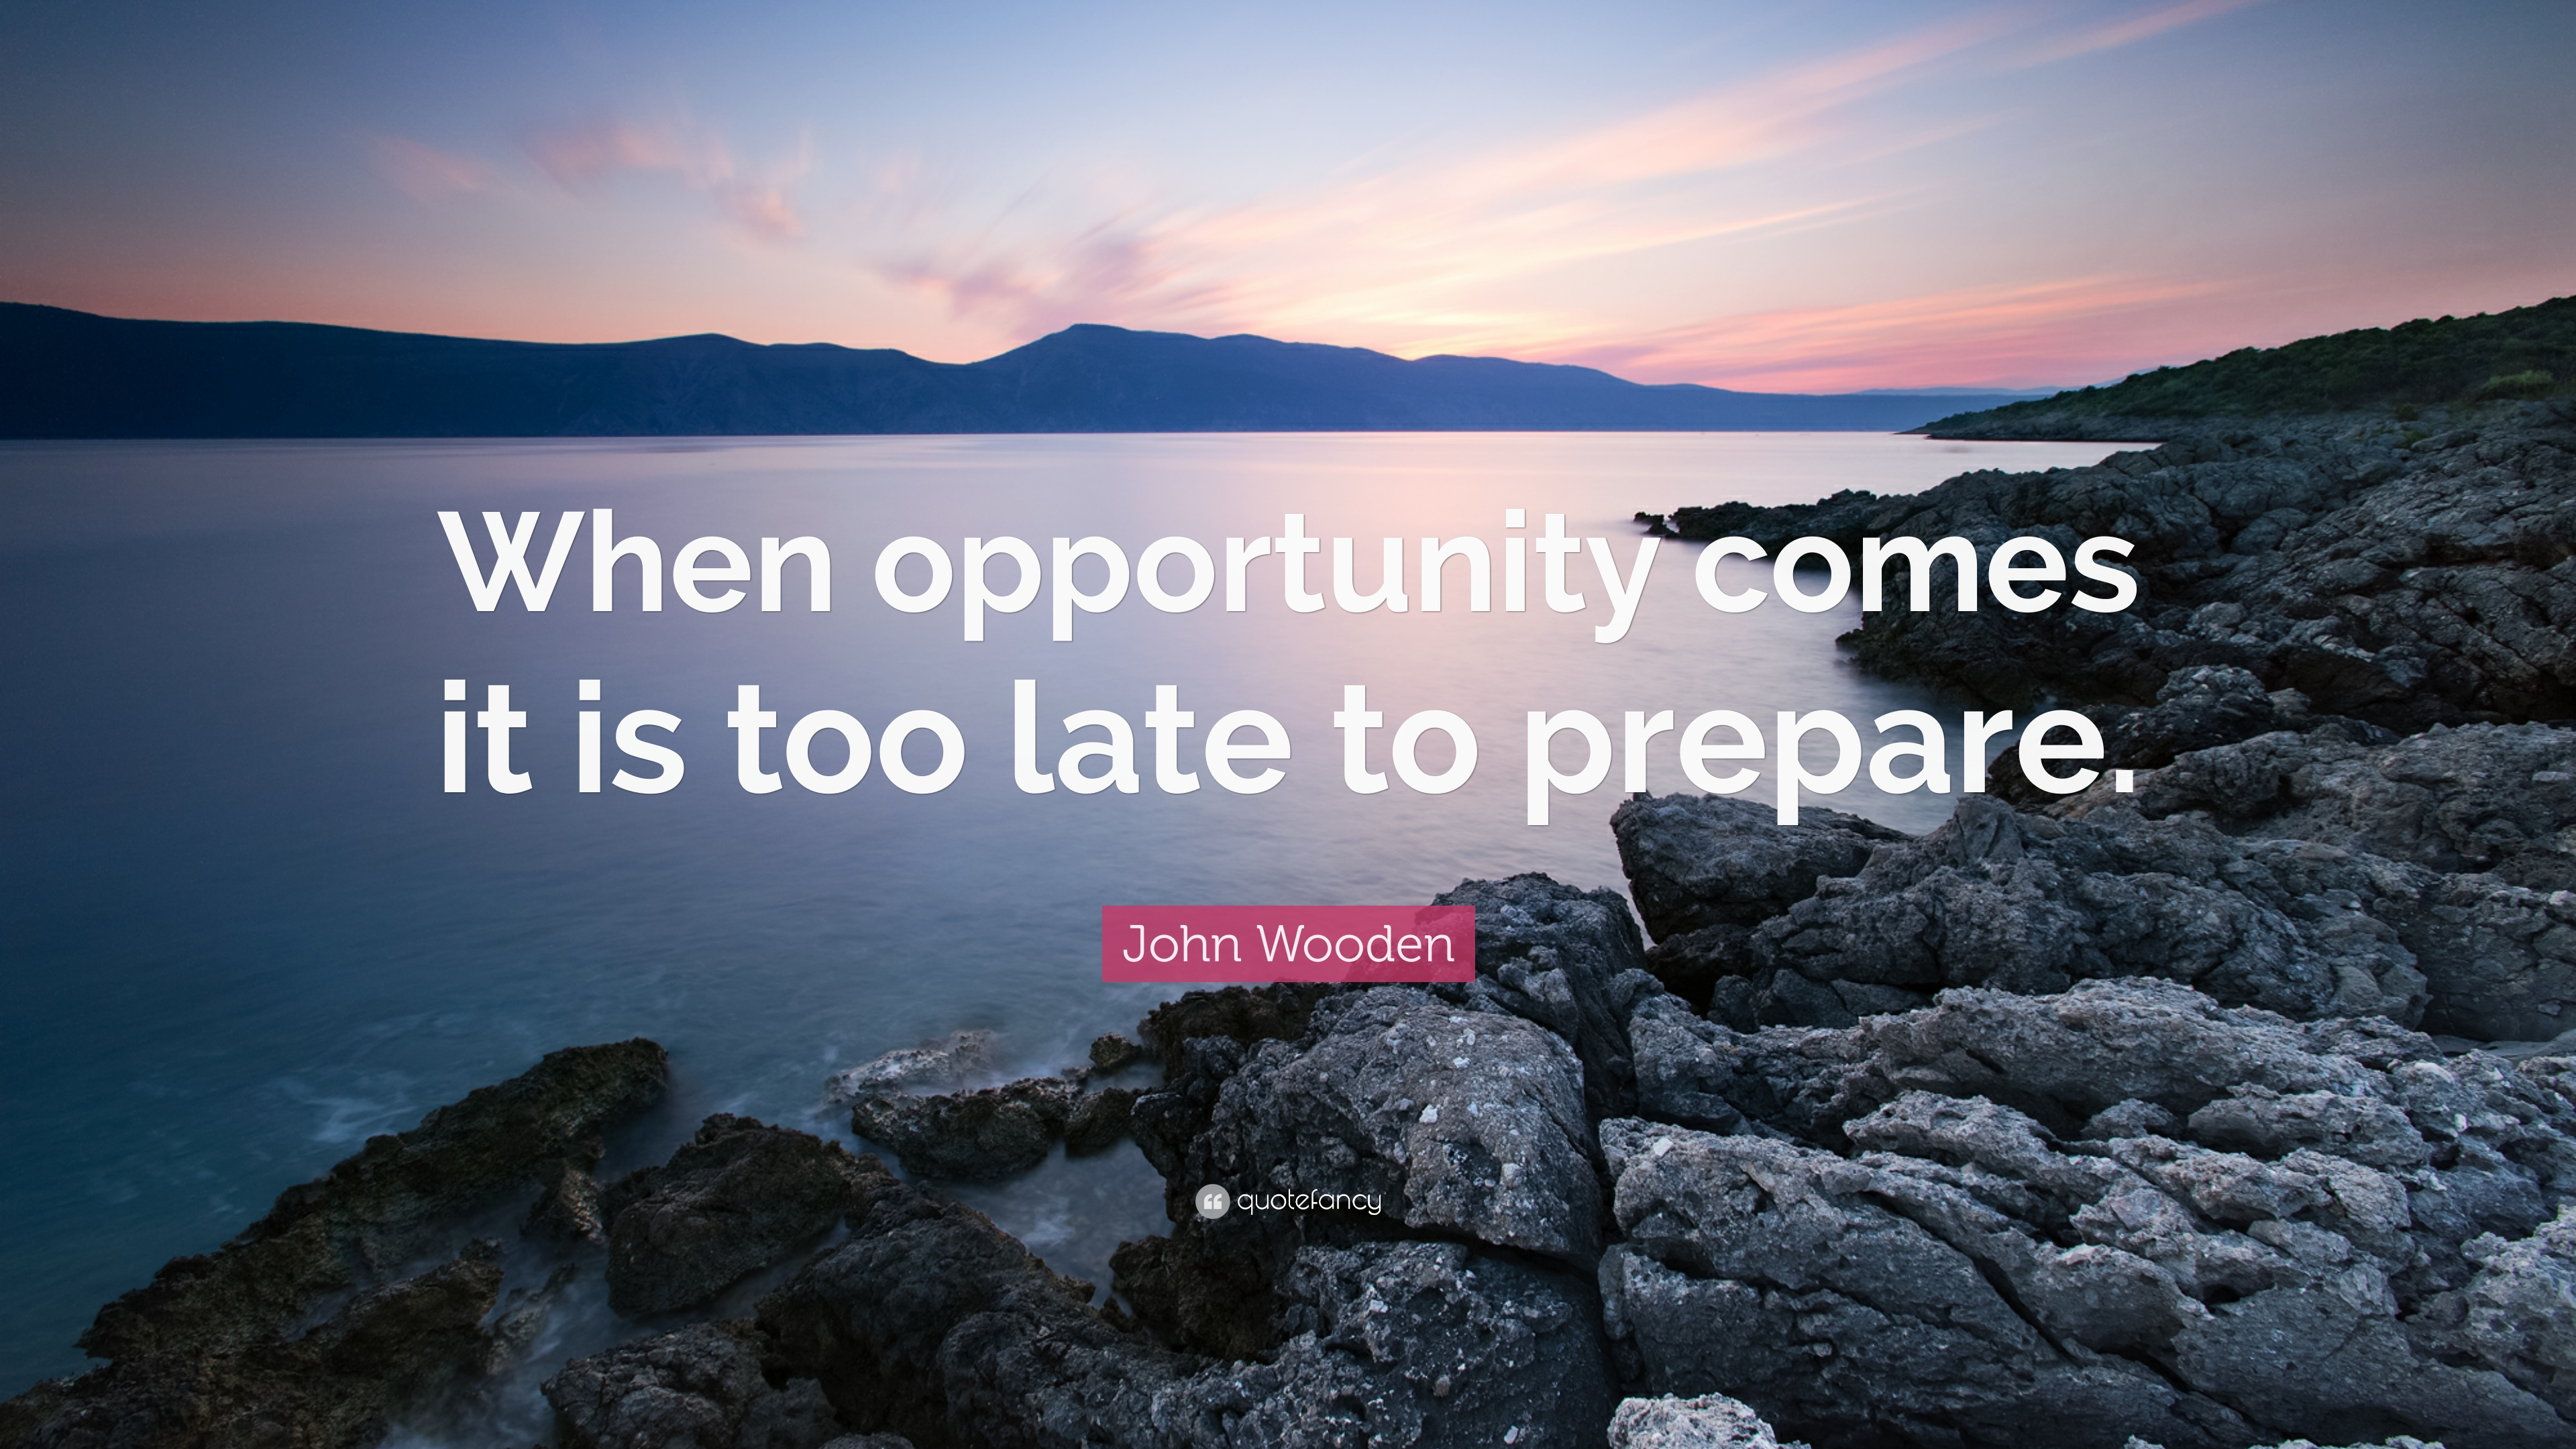 John Wooden Quote When Opportunity Comes It Is Too Late To Prepare